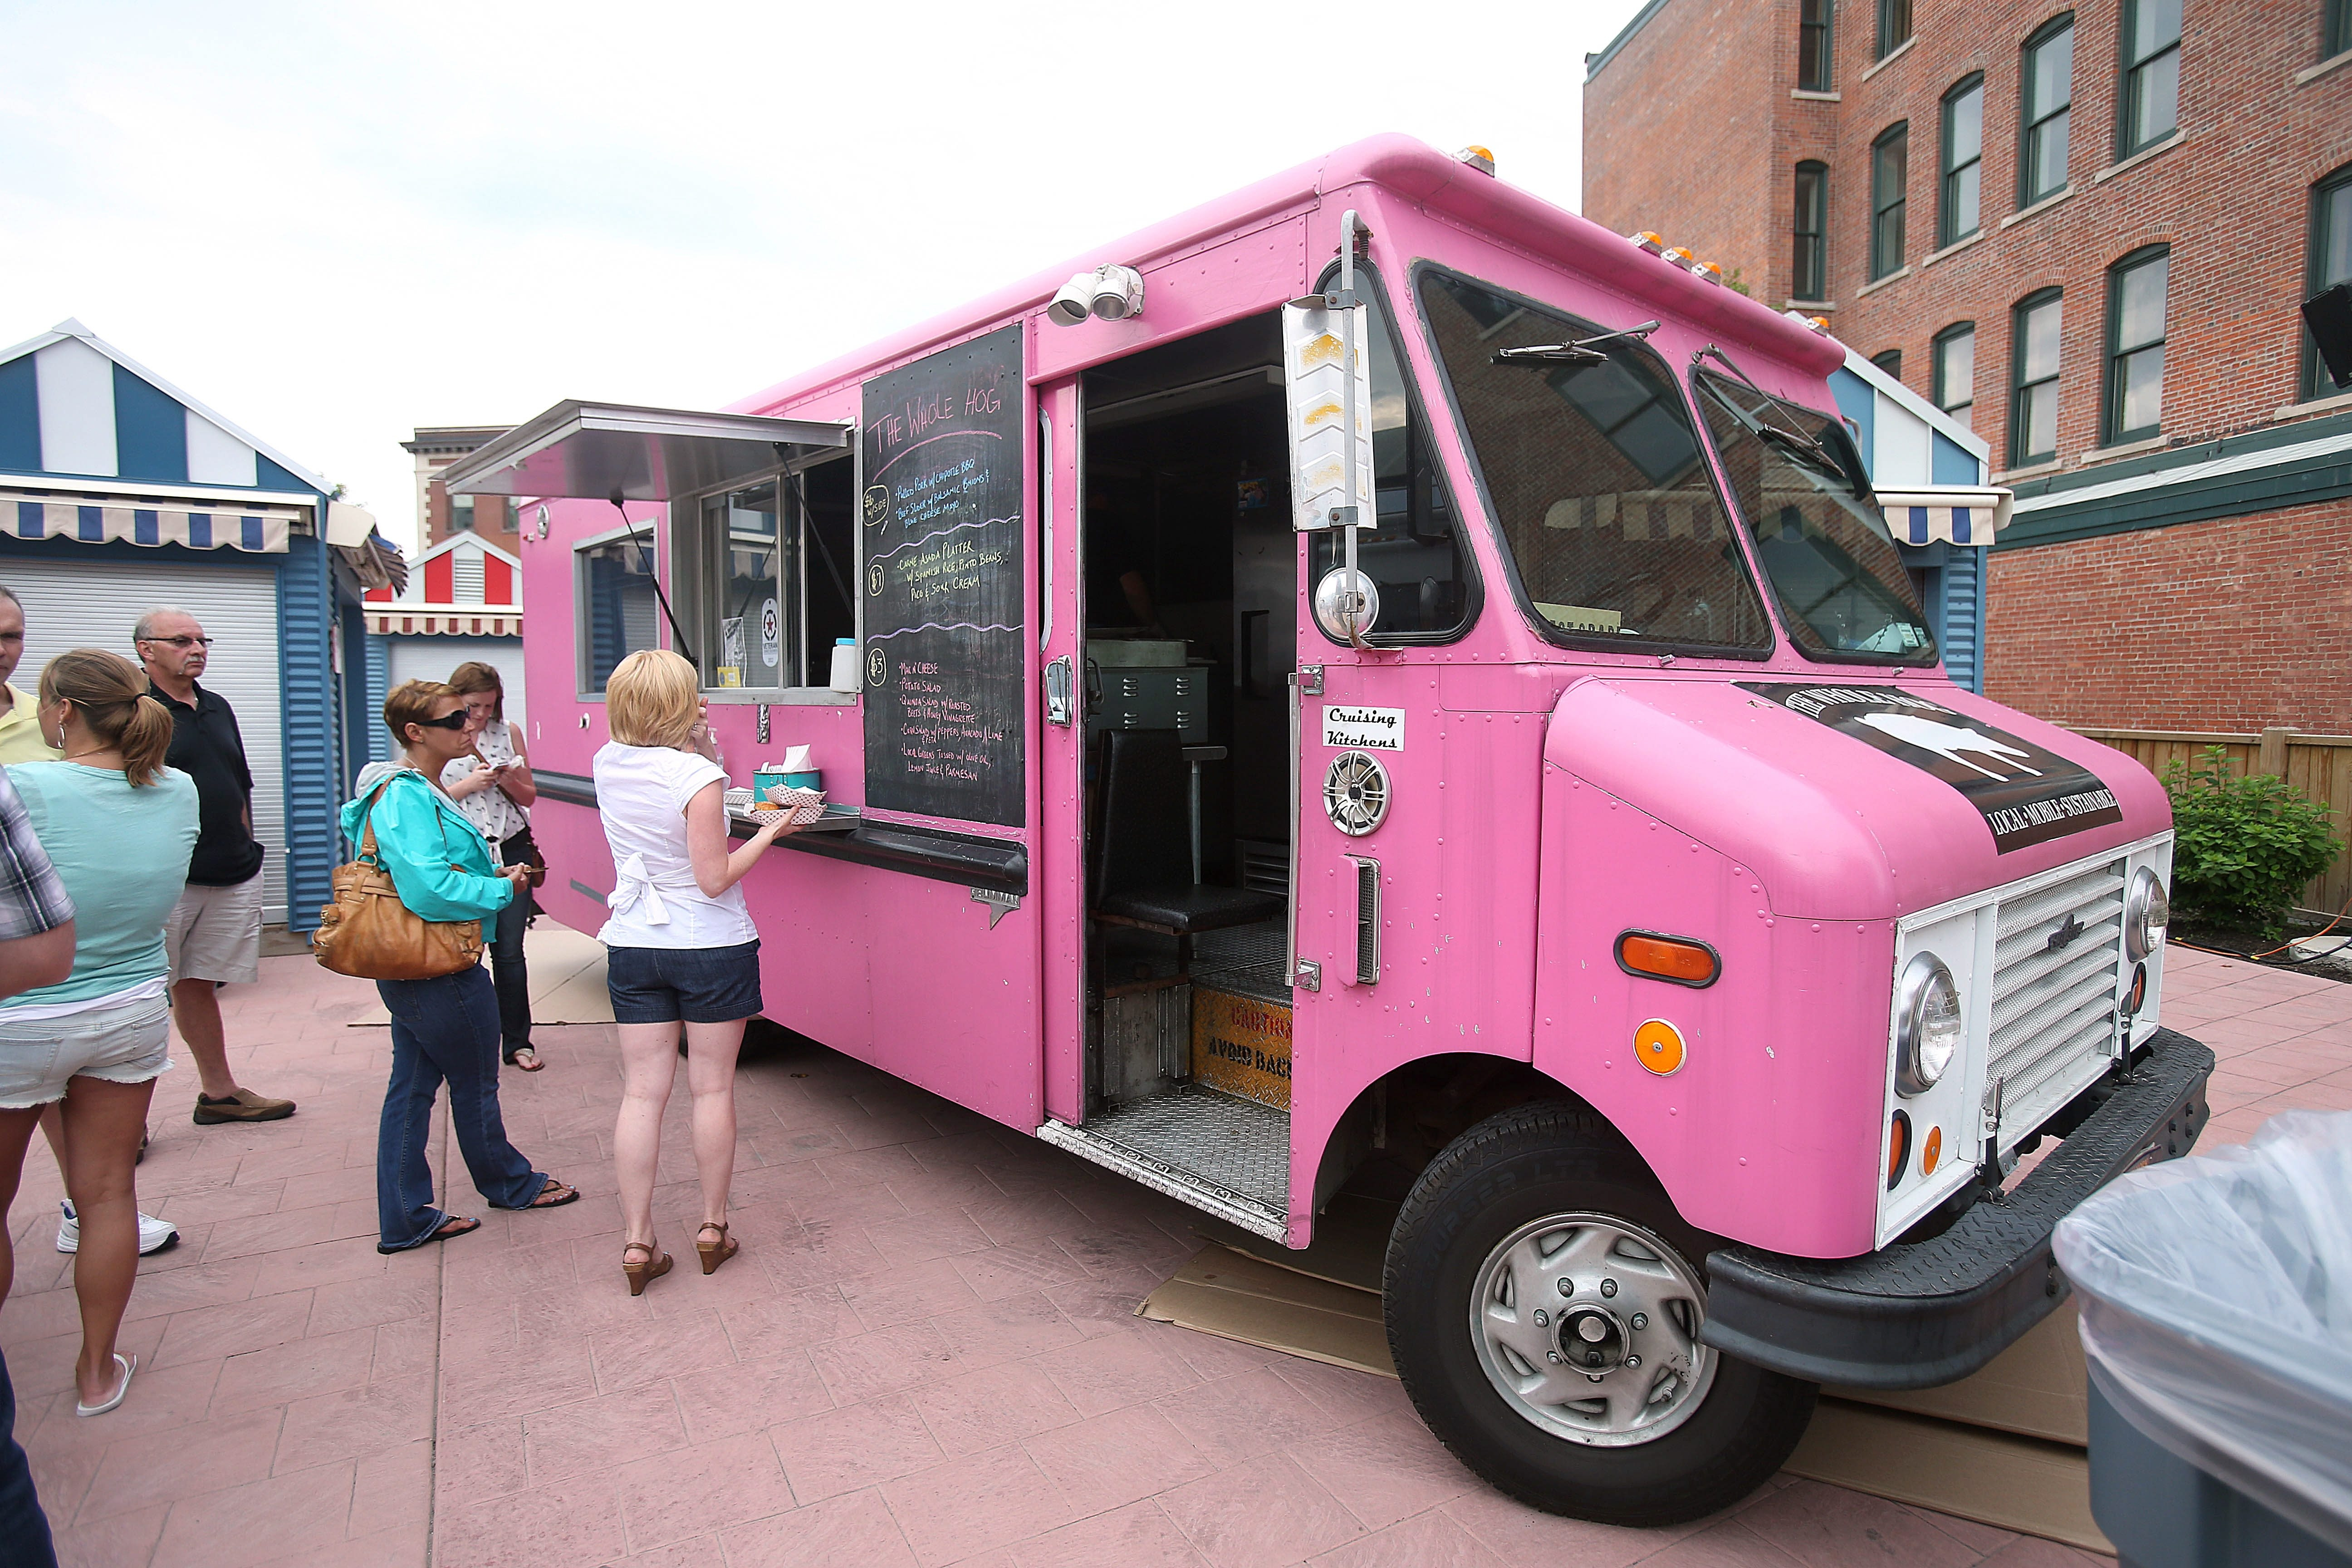 Patrons order from the Whole Hog food truck June 25, 2013.